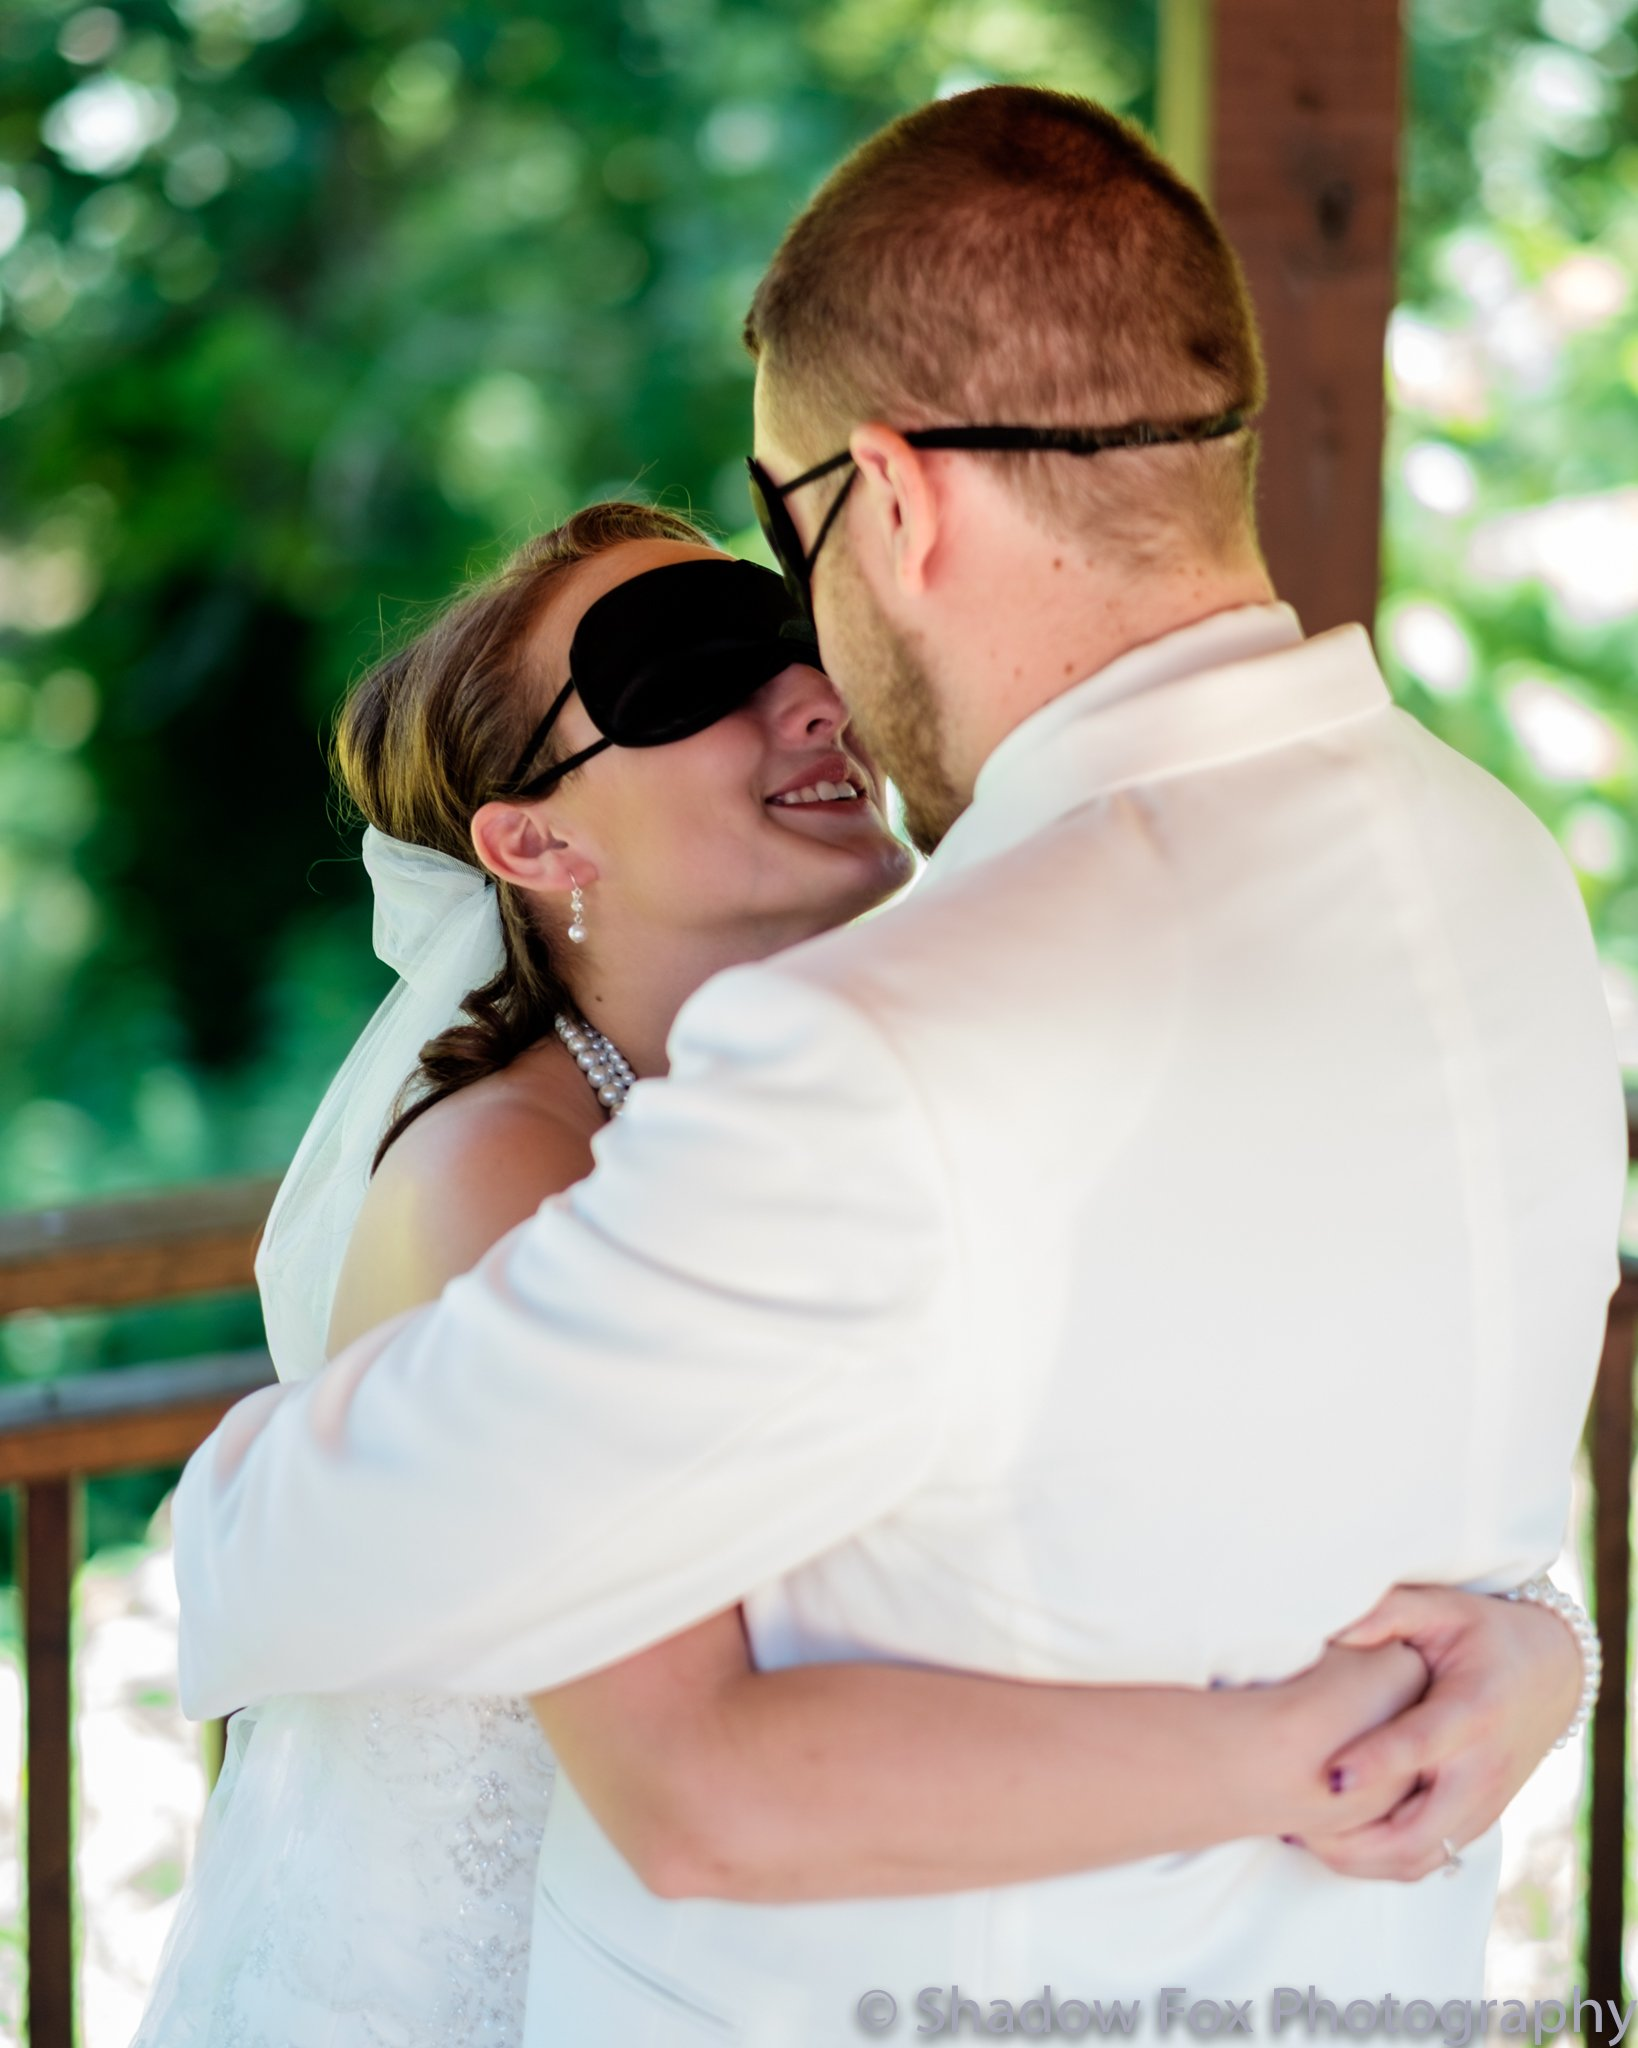 Candid first look wedding photography